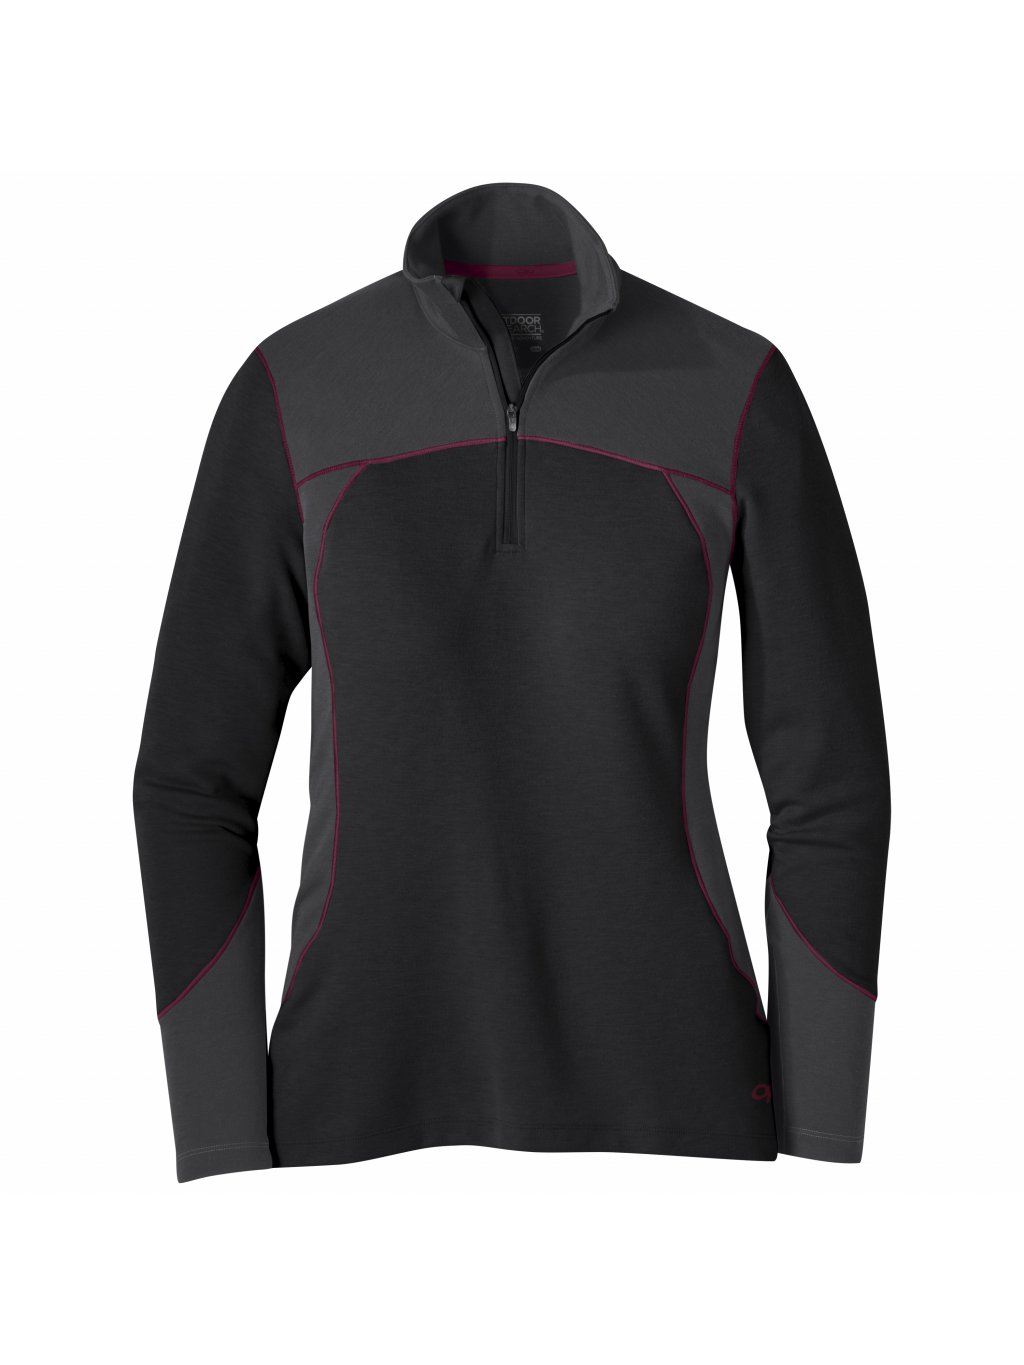 OUTDOOR RESEARCH Women's Blackridge Top 2, black/storm